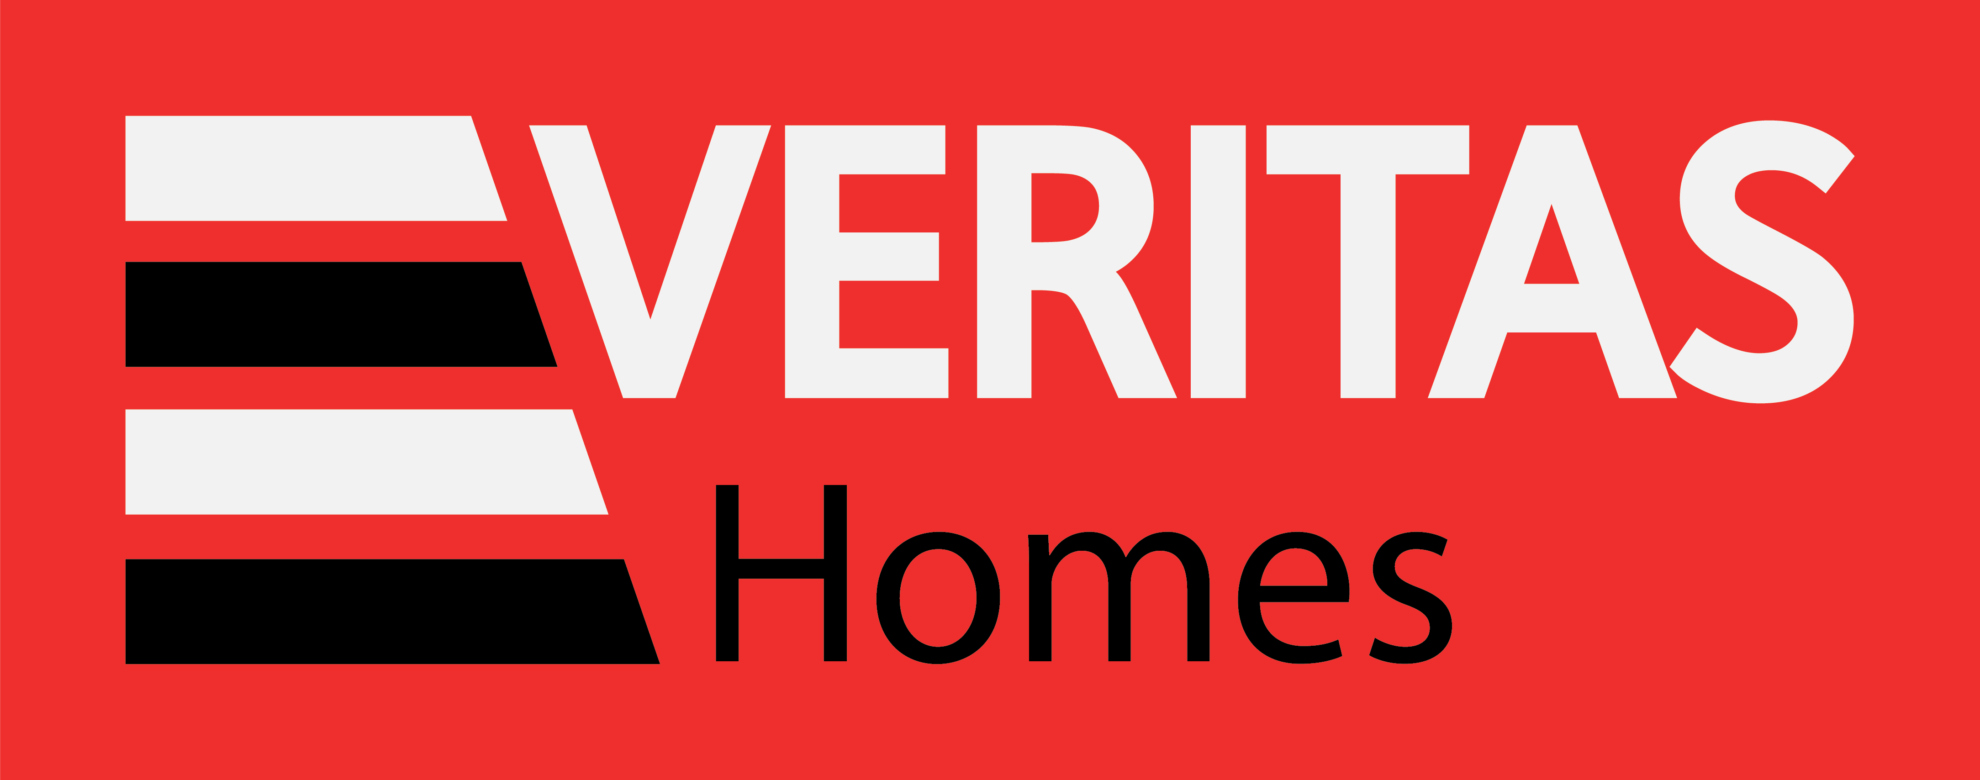 Veritas Homes Logo